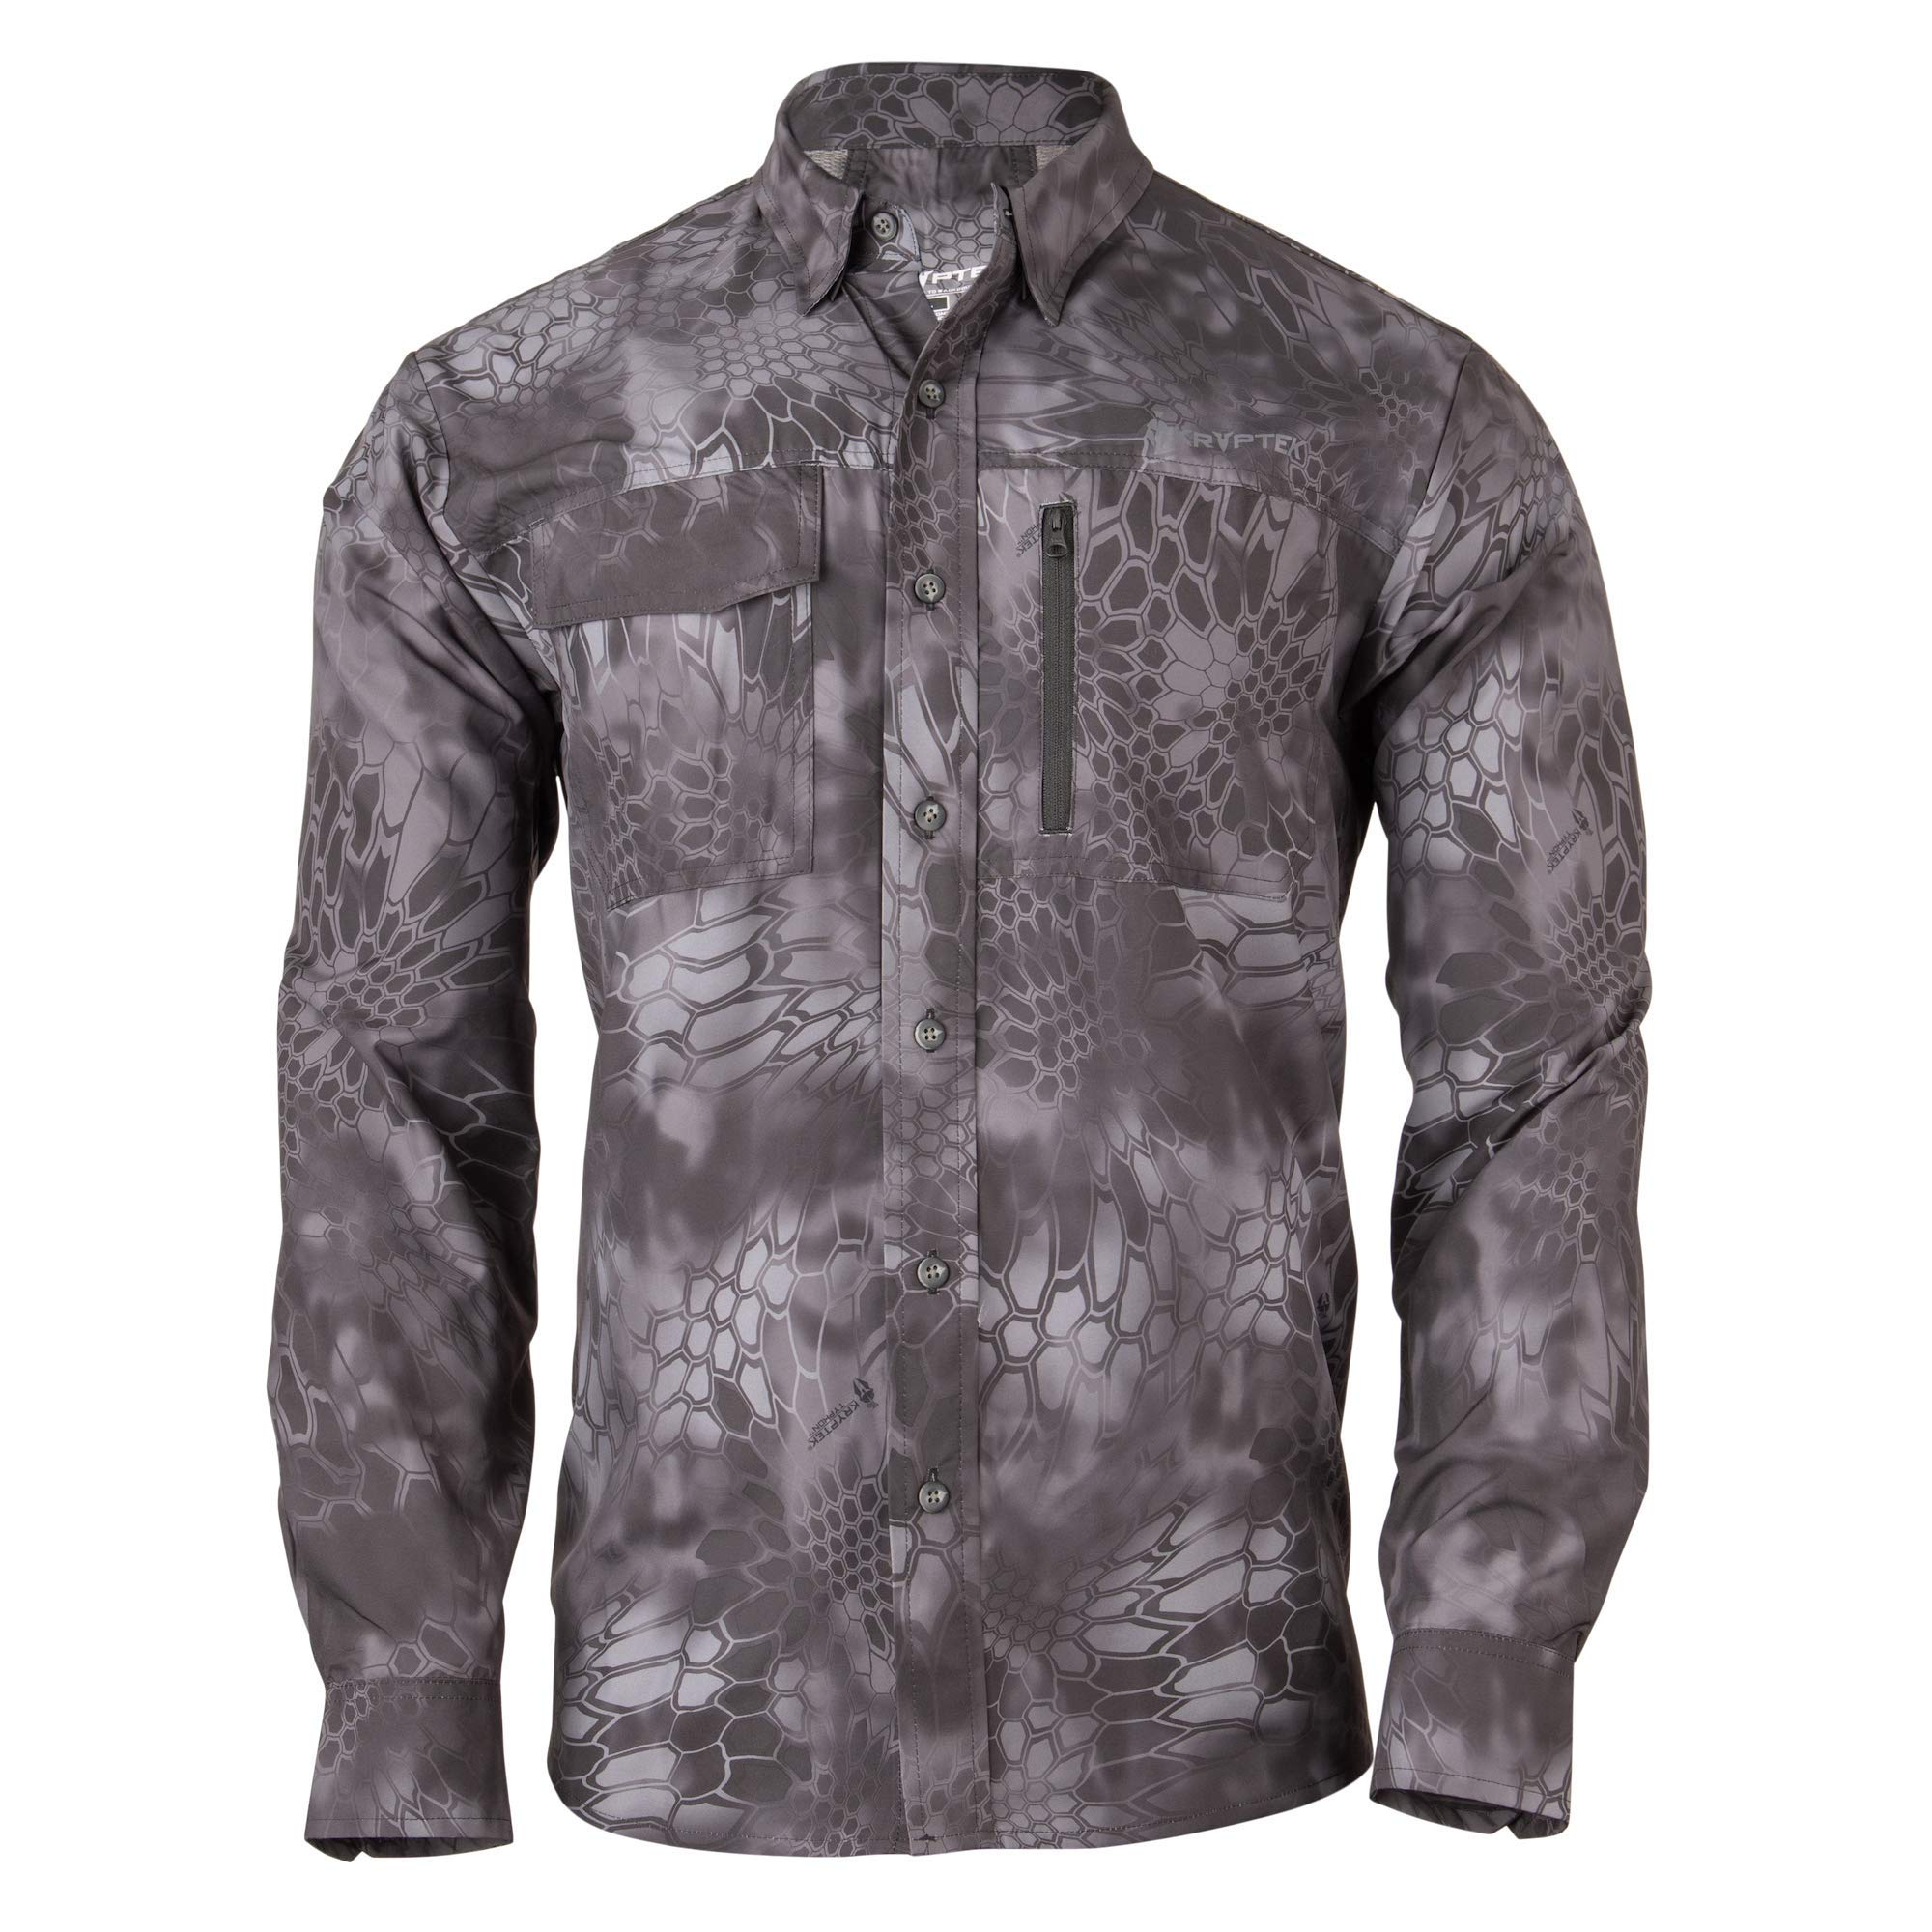 Kryptek Adventure 3 Long Sleeve Camo Hunting Shirt (Valhalla Collection), Typhon, XL by Kryptek